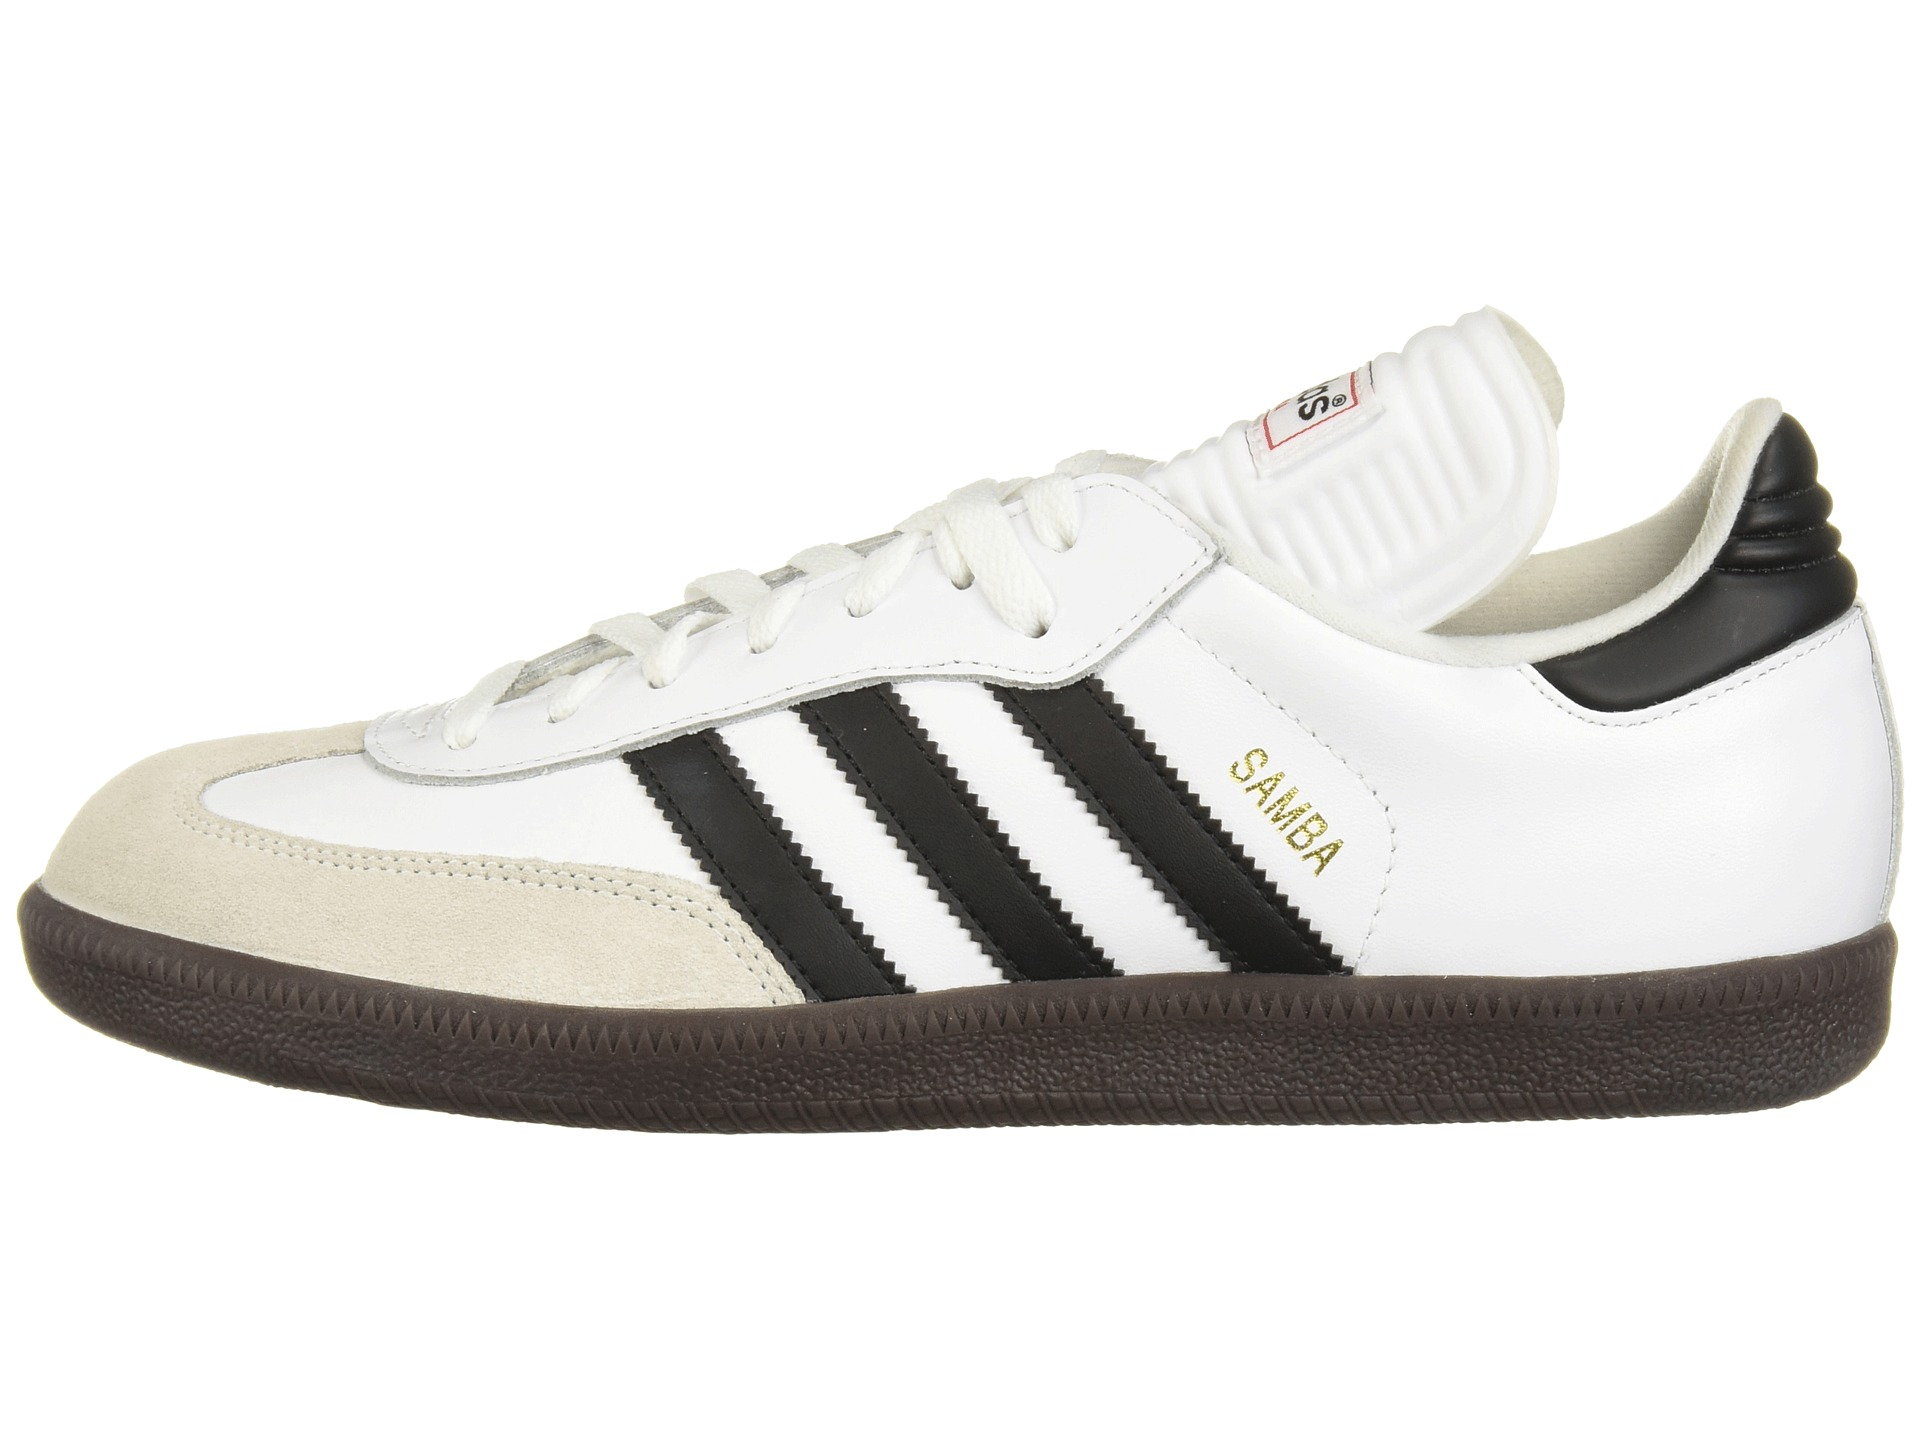 Adidas Retro Soccer Shoes